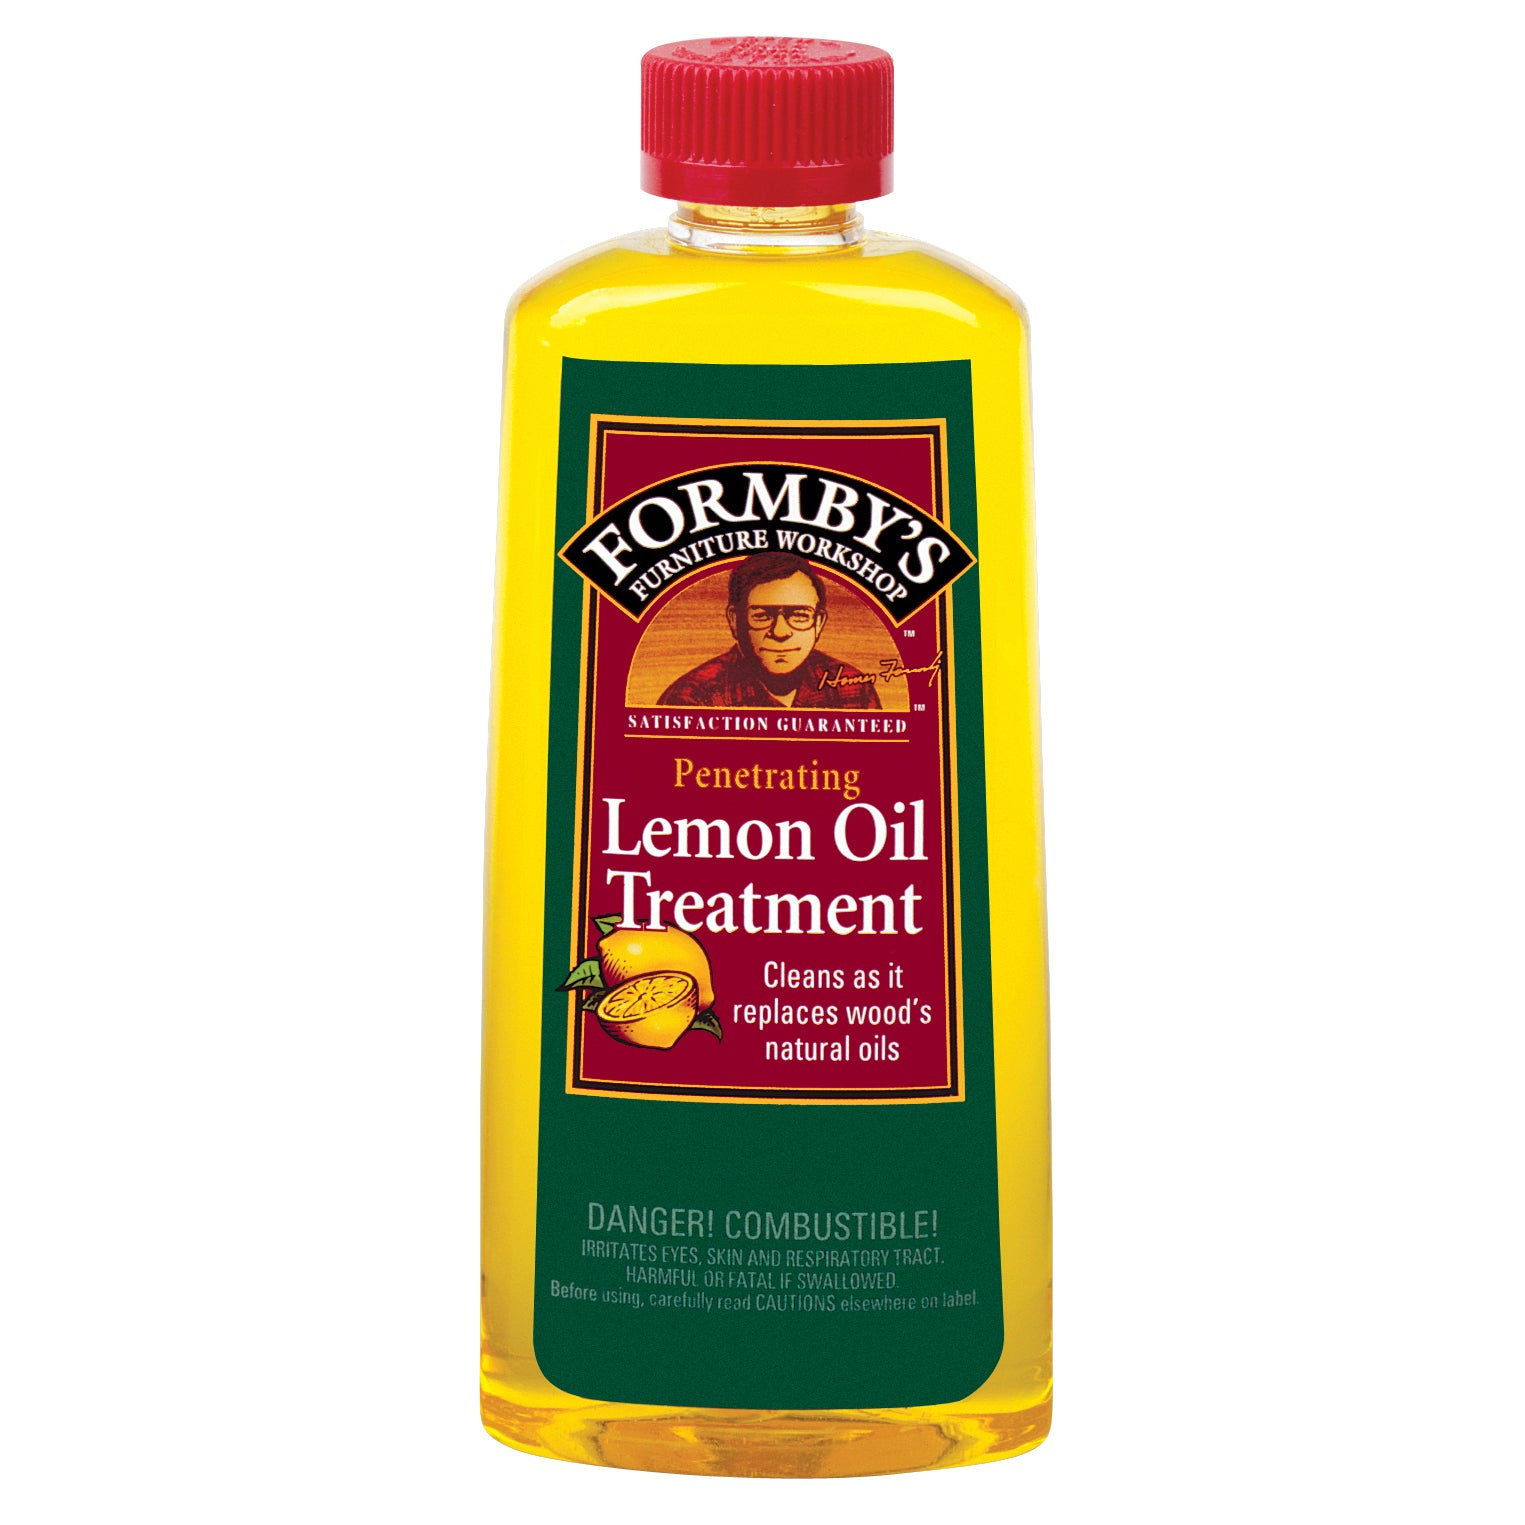 Formbys 30115 16 Oz Lemon (Yellow) Oil Furniture Treatmen...